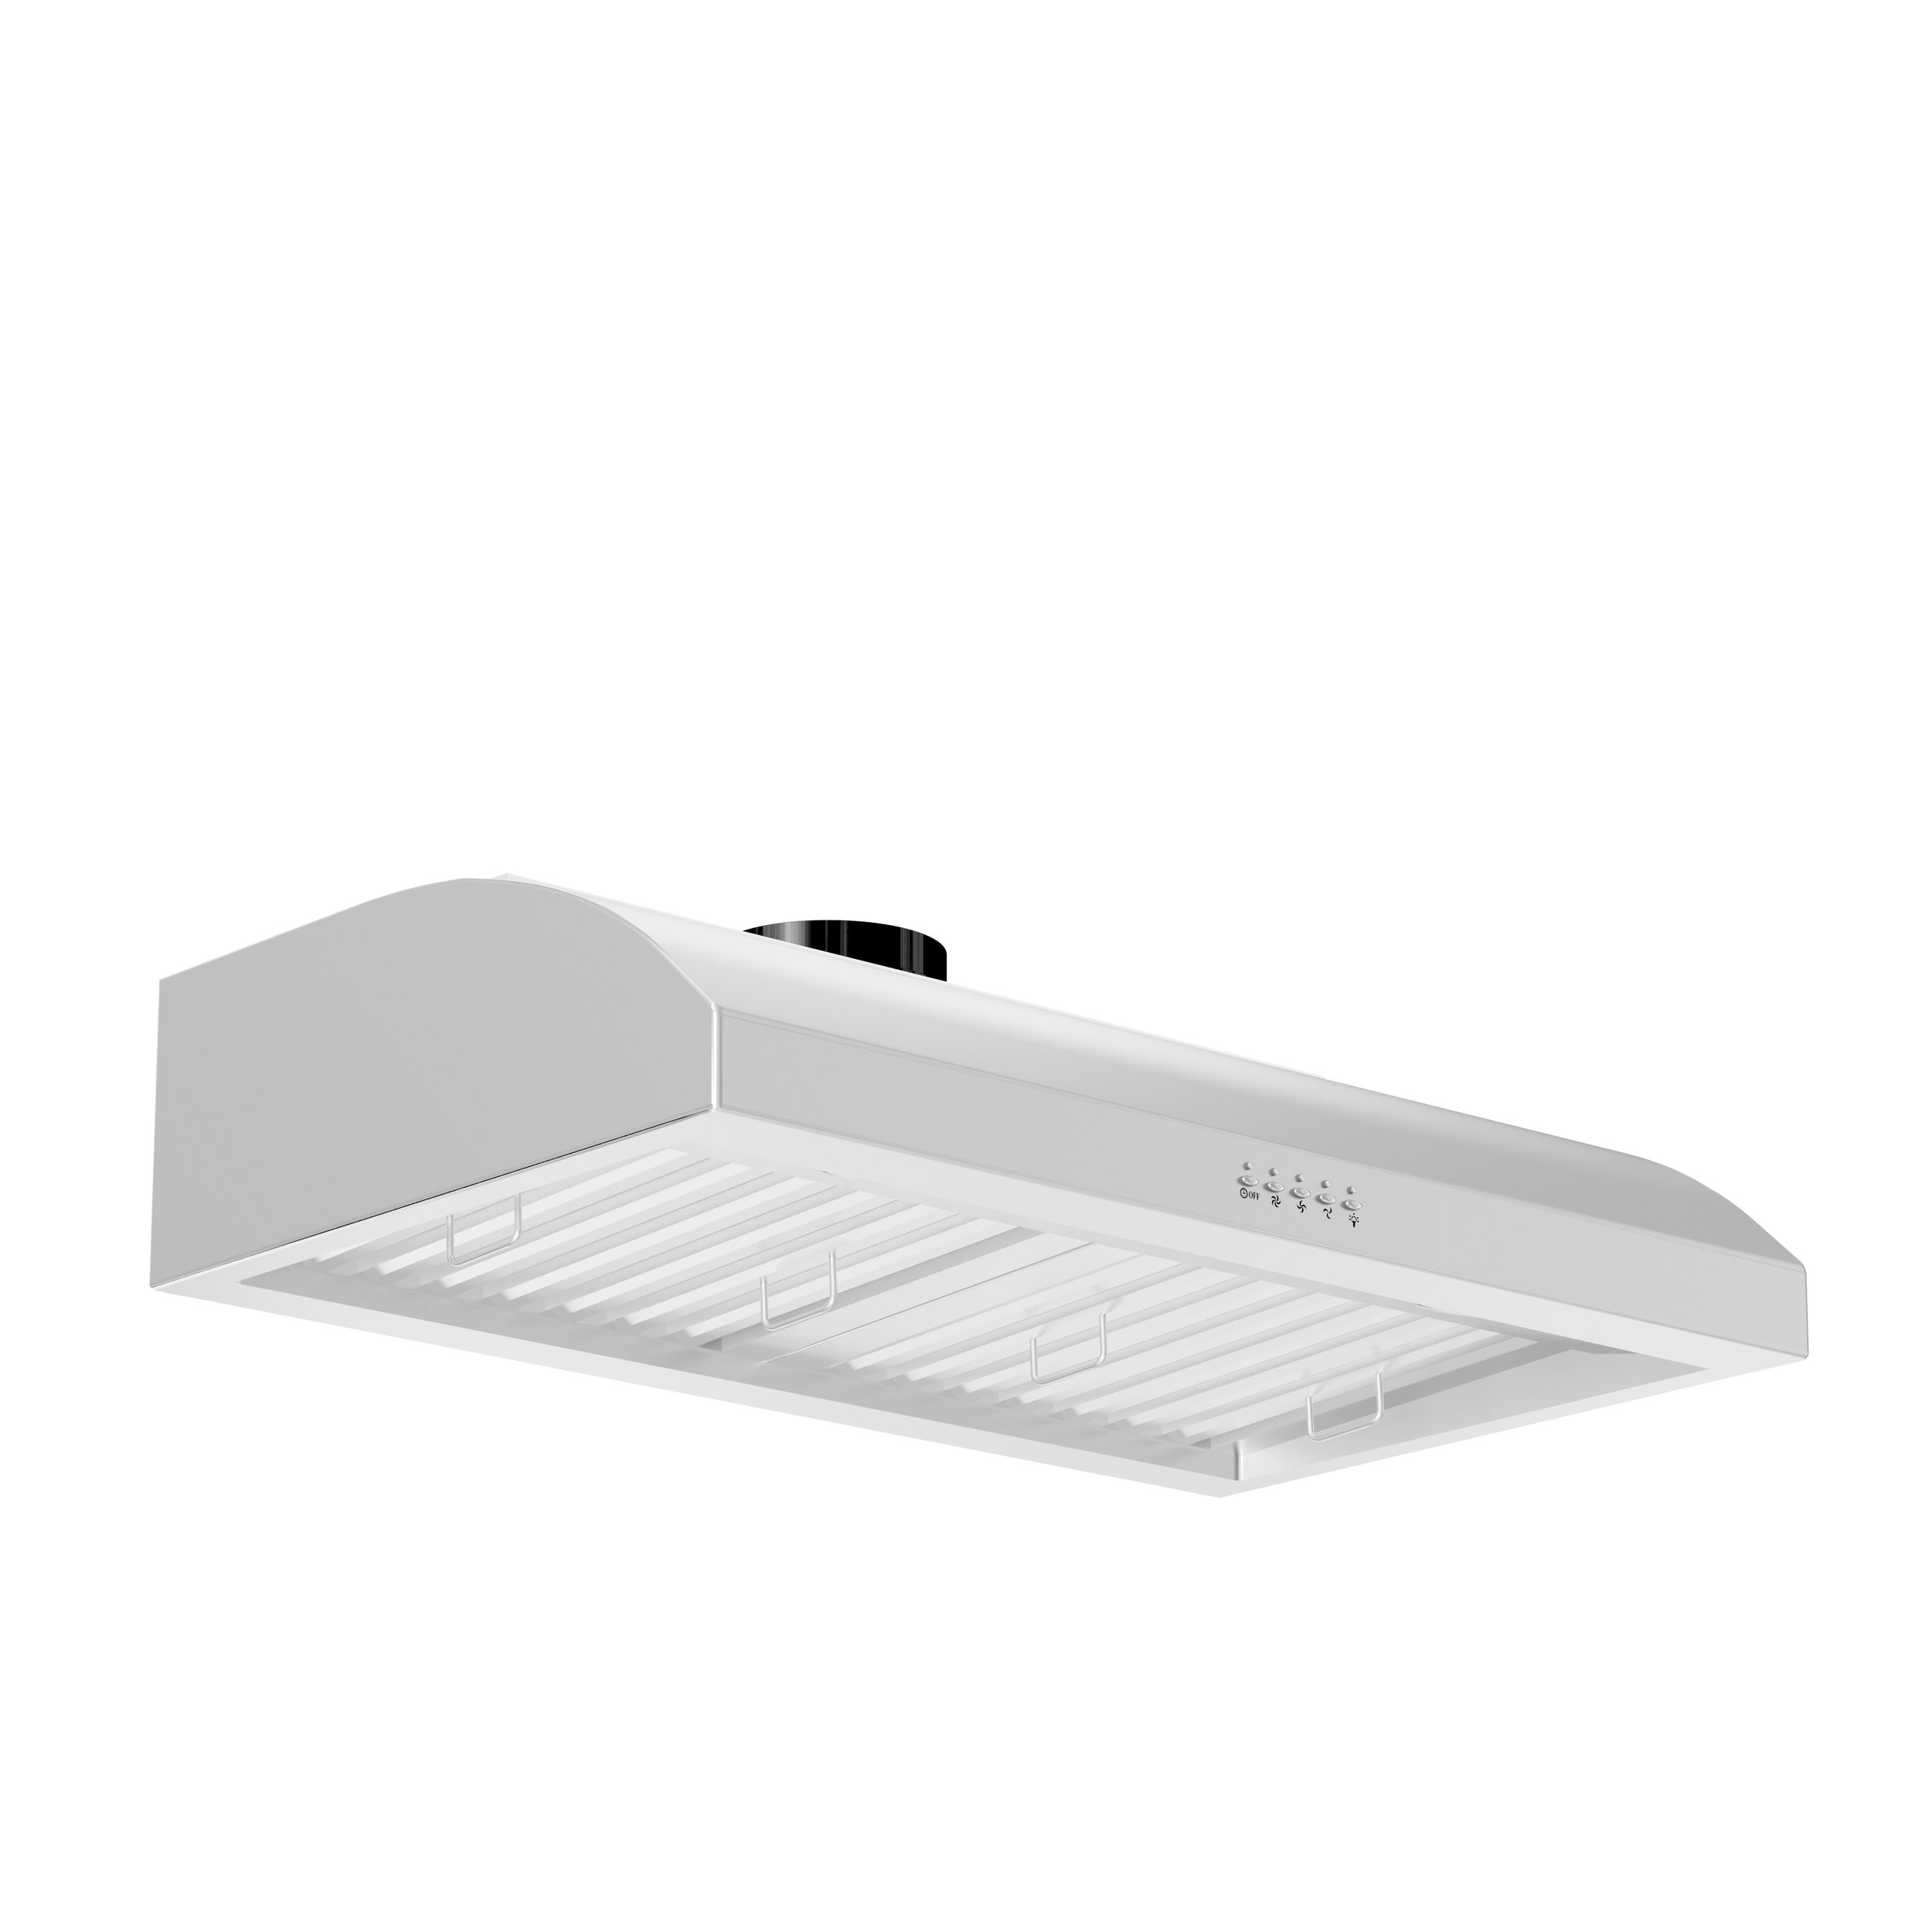 zline-stainless-steel-under-cabinet-range-hood-627-side-under.jpeg